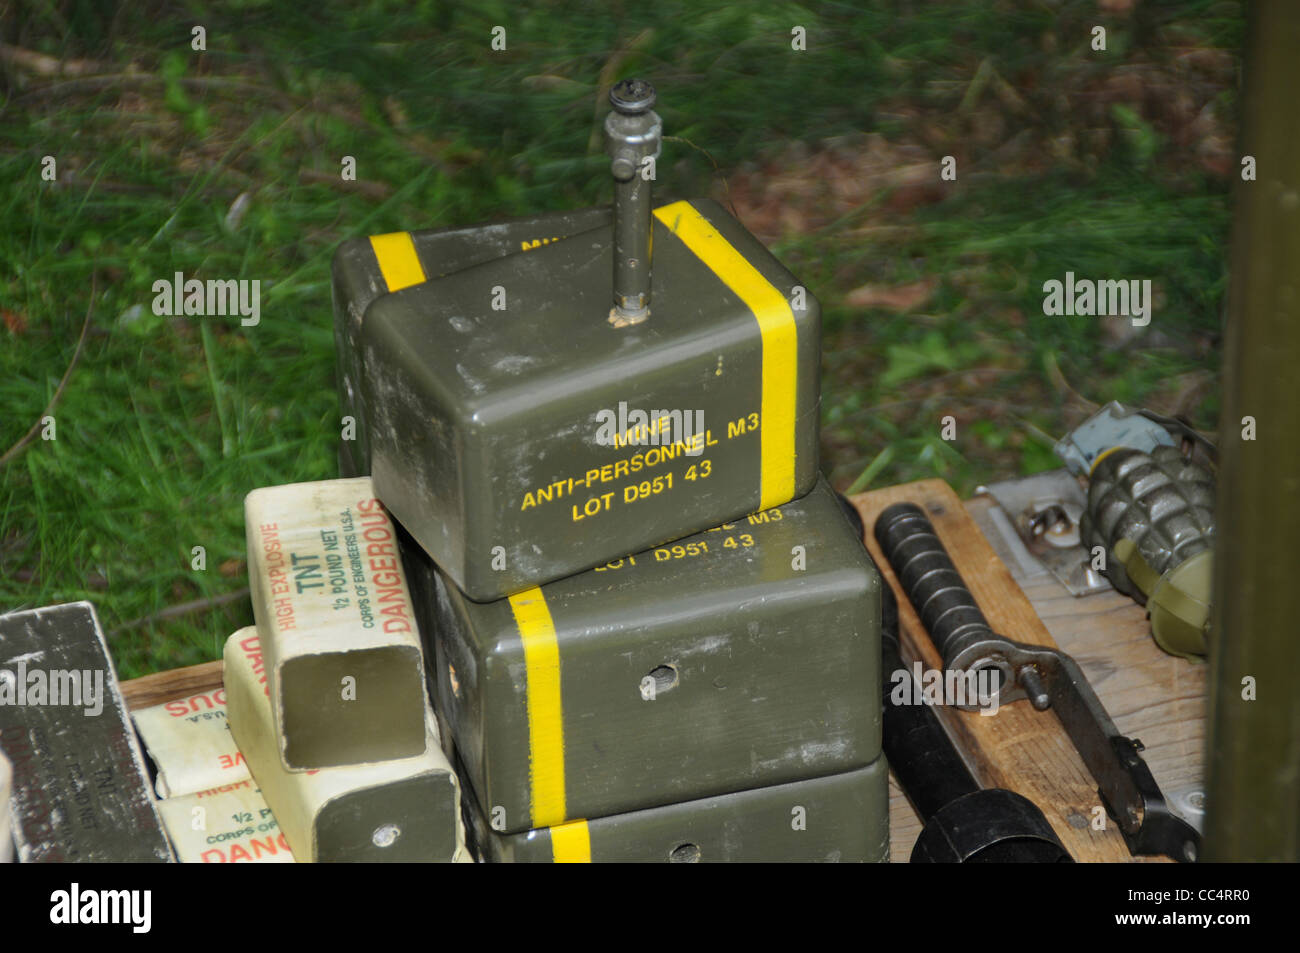 WWII explosives sitting on the grass - Stock Image